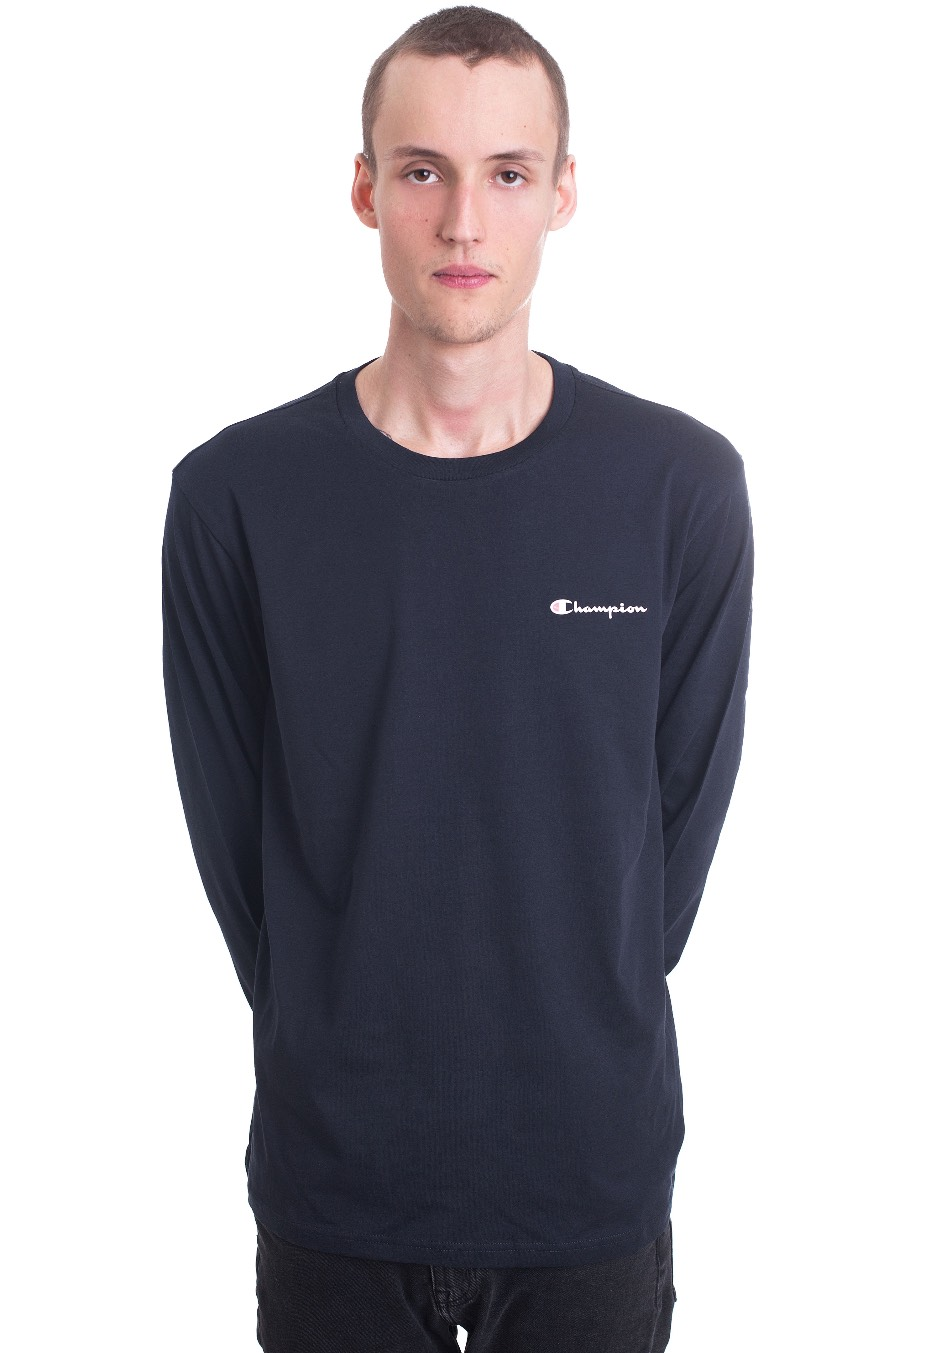 fe28af78 Champion - Long Sleeve T-Shirt New Navy - Longsleeve - Streetwear Shop -  Impericon.com UK